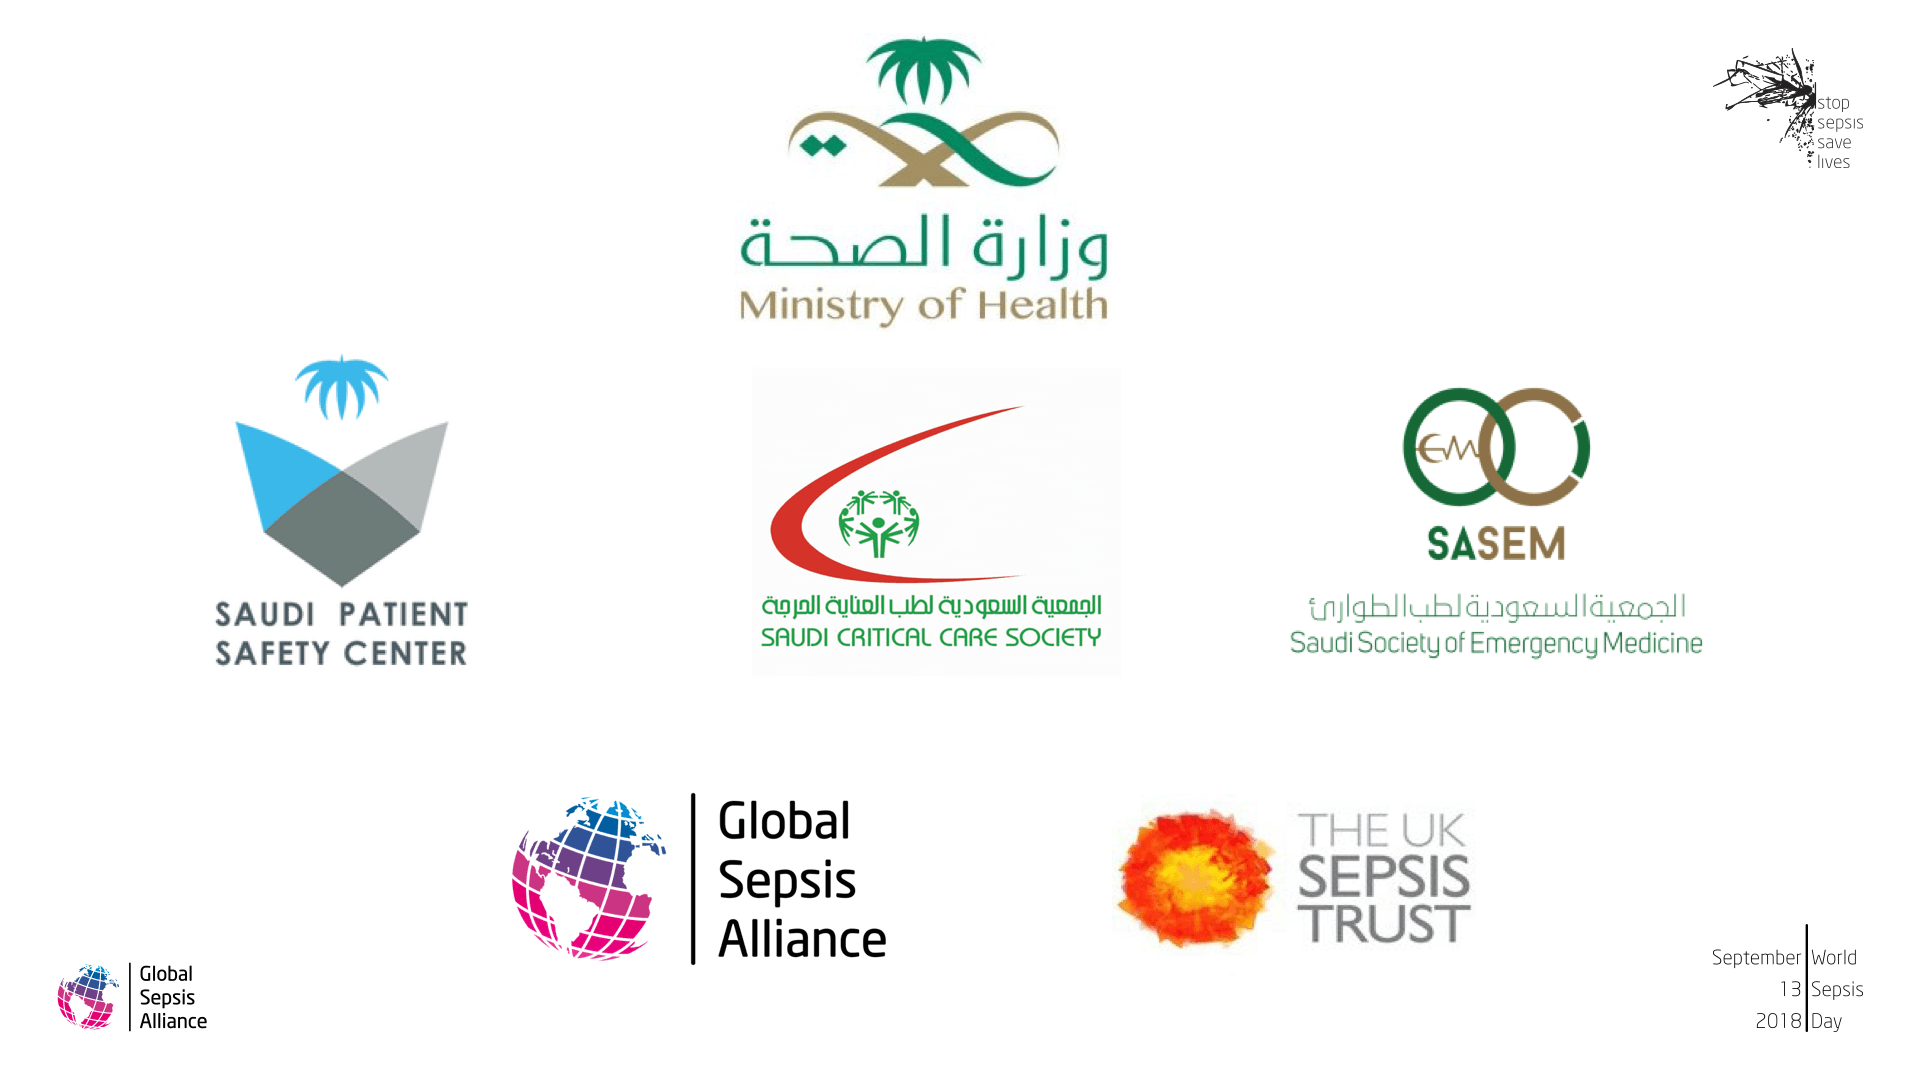 Progress of the National Sepsis Plan in Saudi Arabia4.png